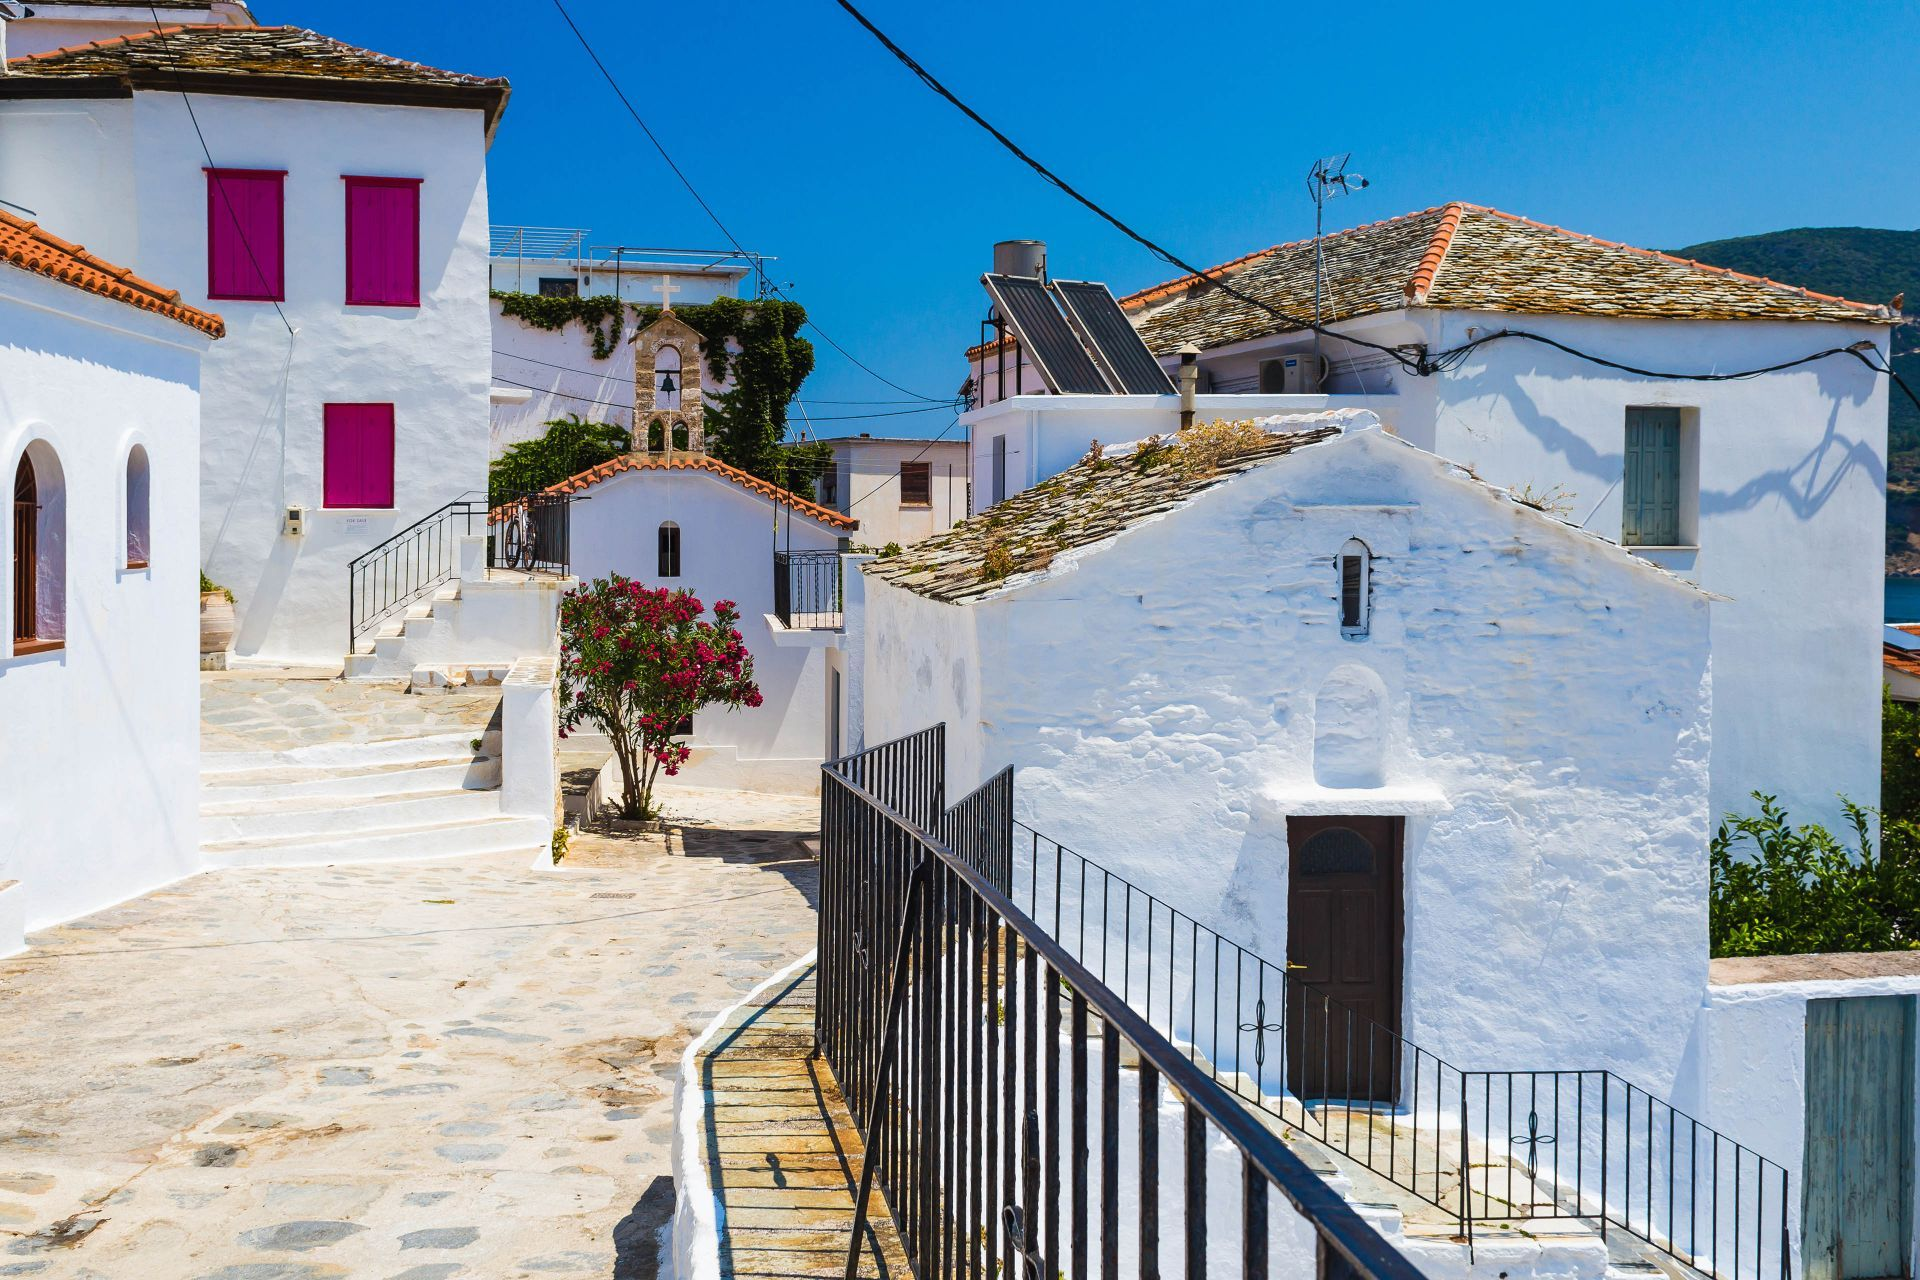 Accommodation and hotels in Skopelos